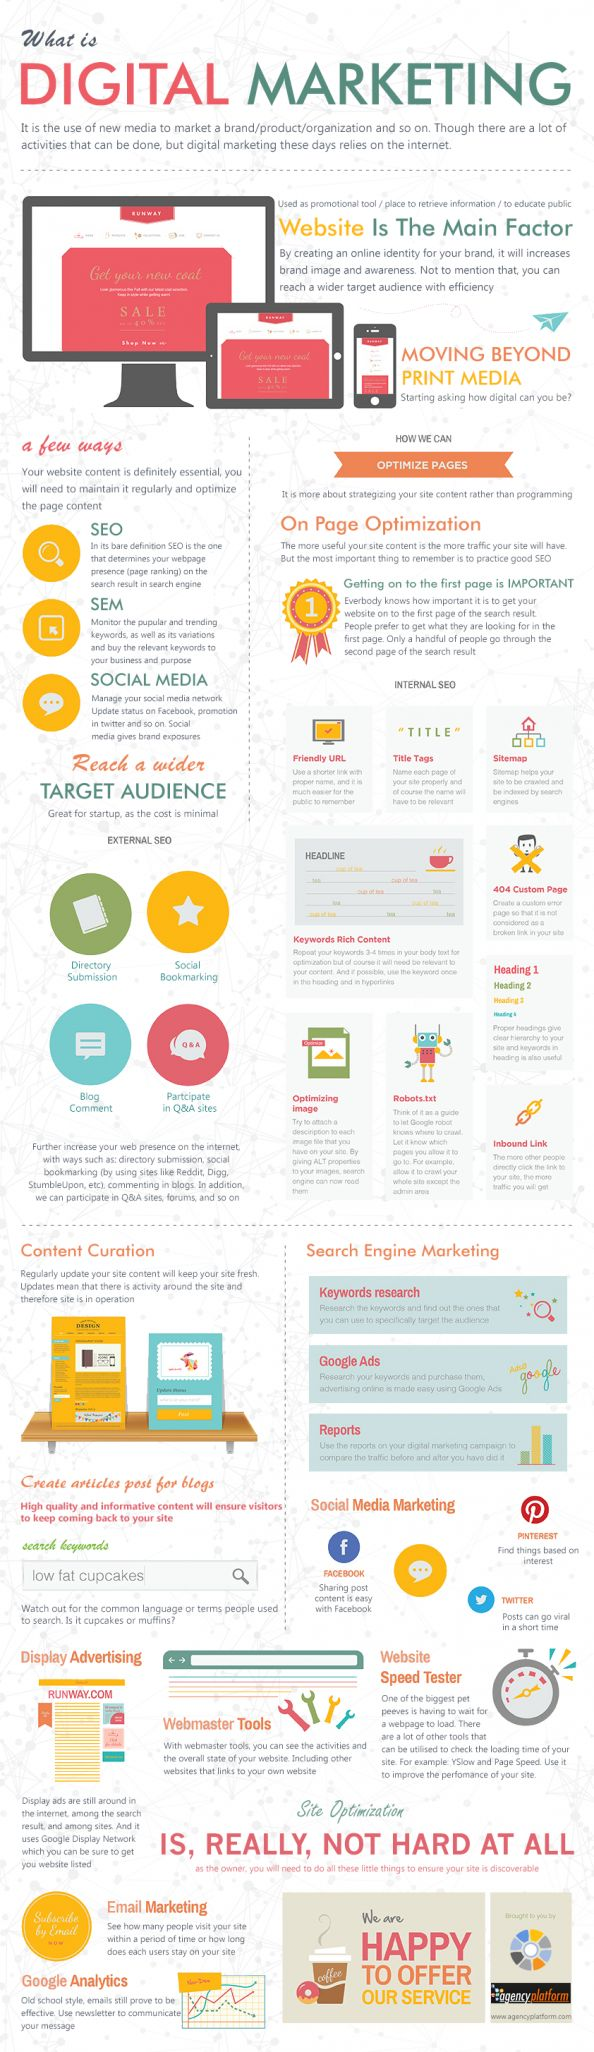 Digital Marketing explained! Brought to you by ShopletPromos.com - promotional products for your business.